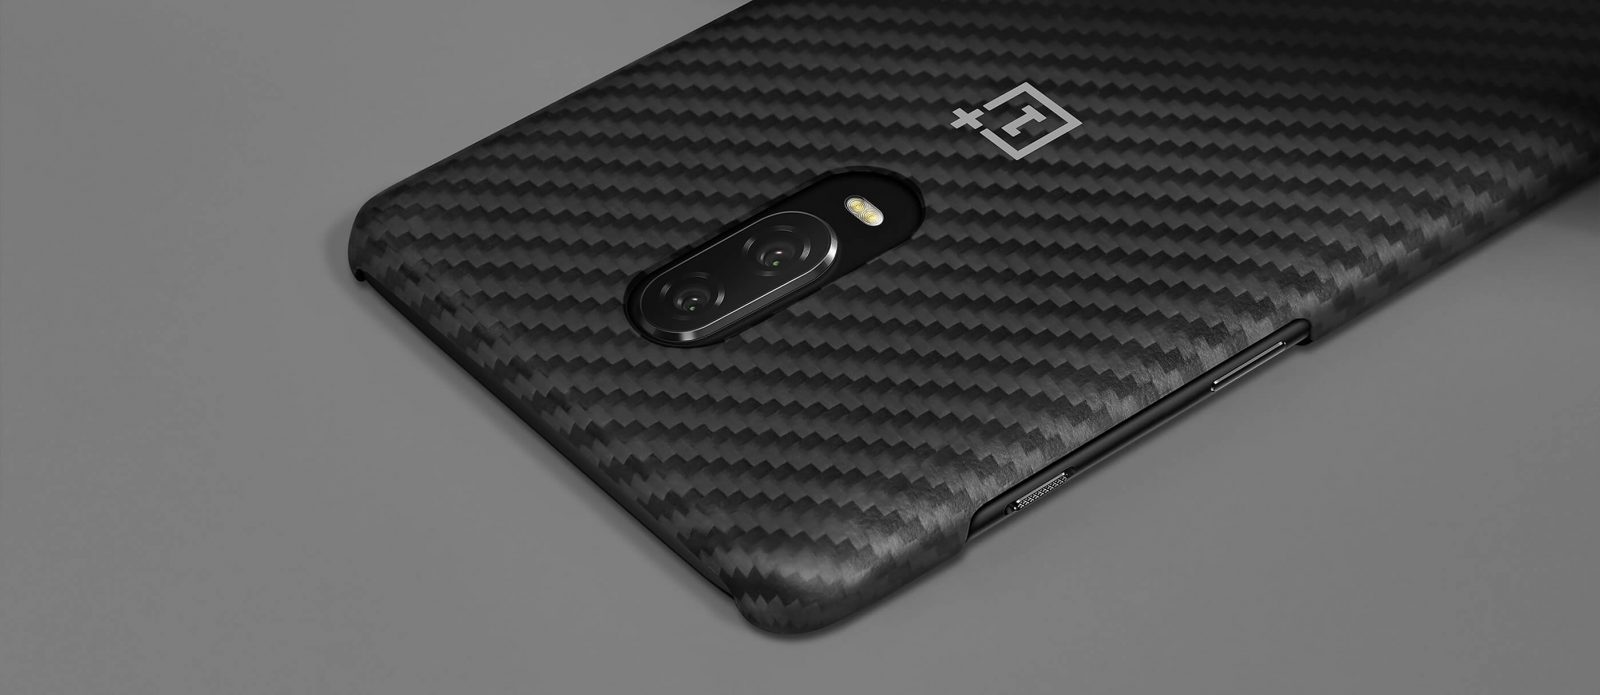 Official Oneplus Karbon Protective Case For Oneplus 6t (7)